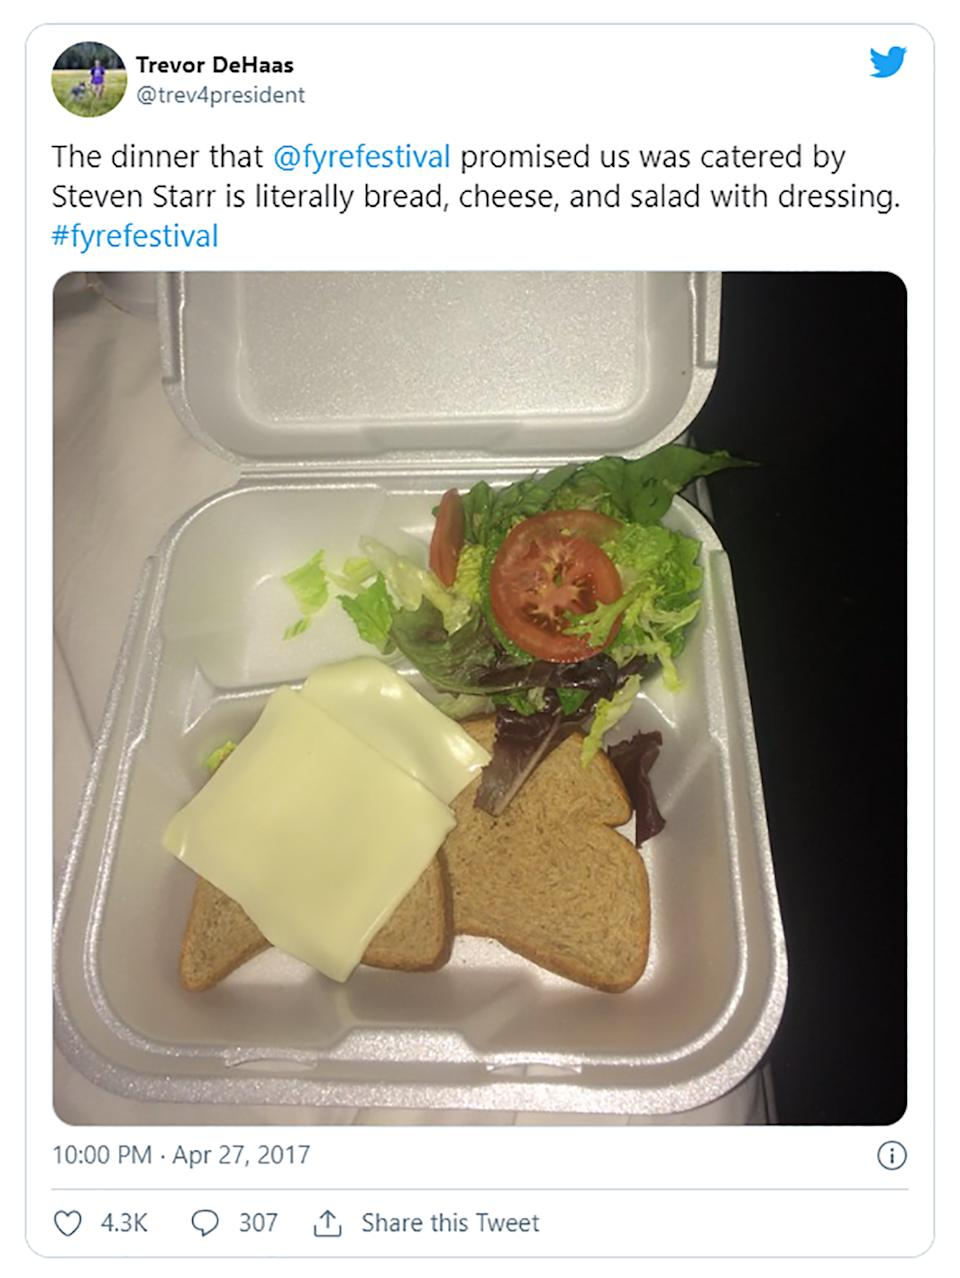 A tweet by Trevor DeHaas about a sandwich from Fyre Festival is pictured.